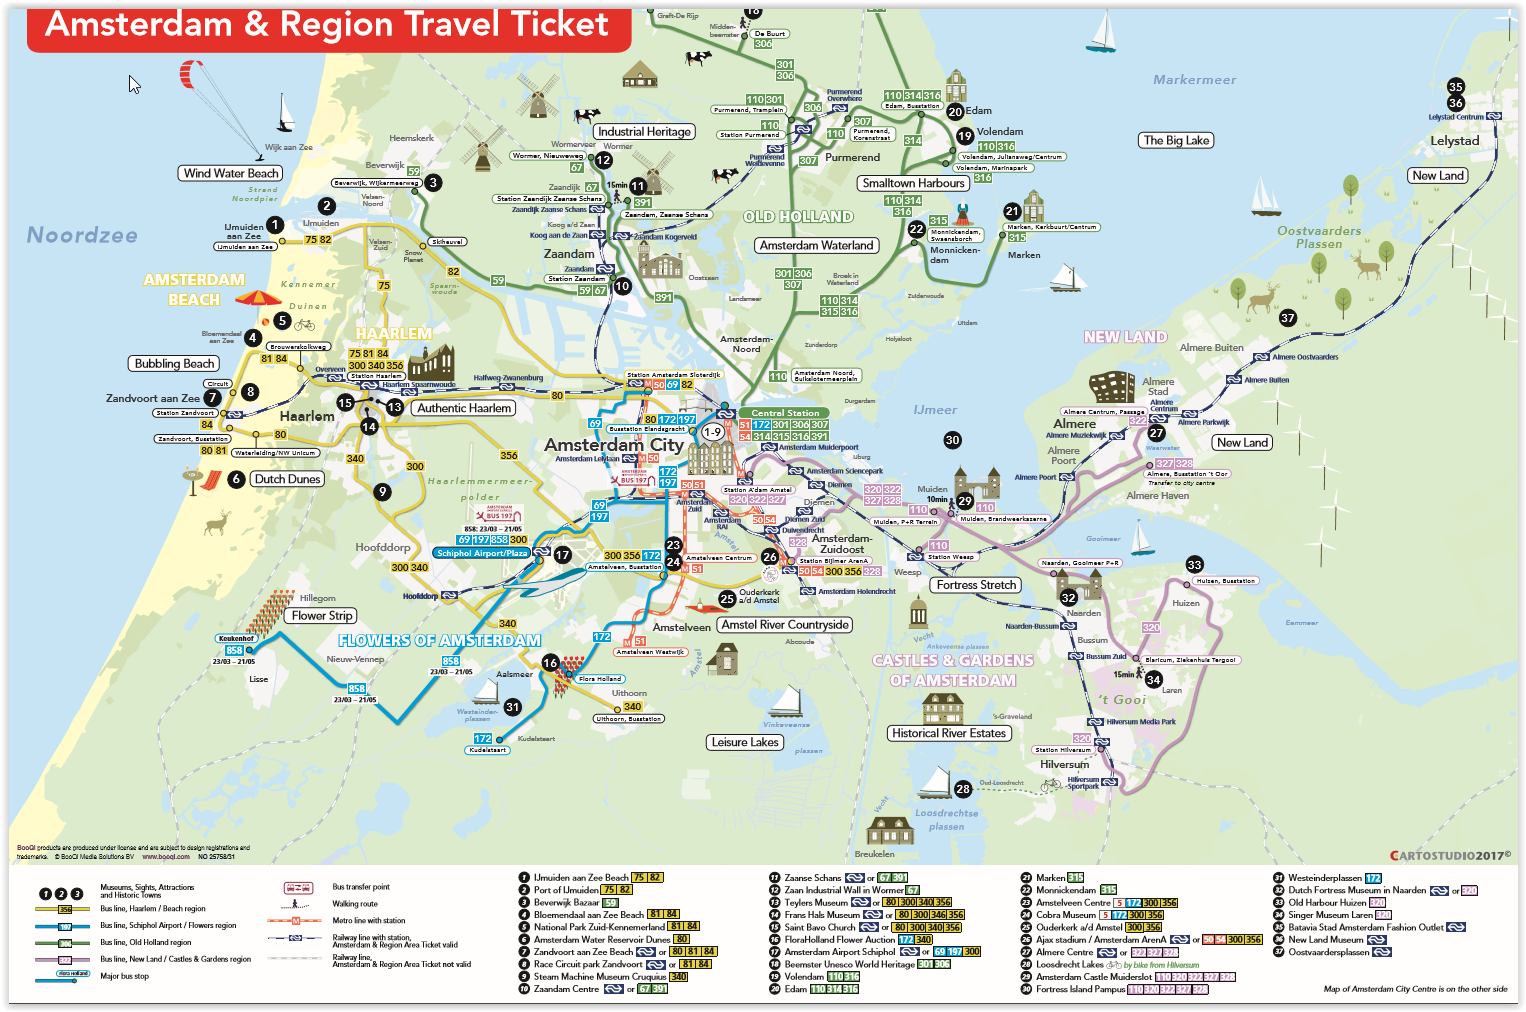 Amsterdam Almere Travel Pass Map